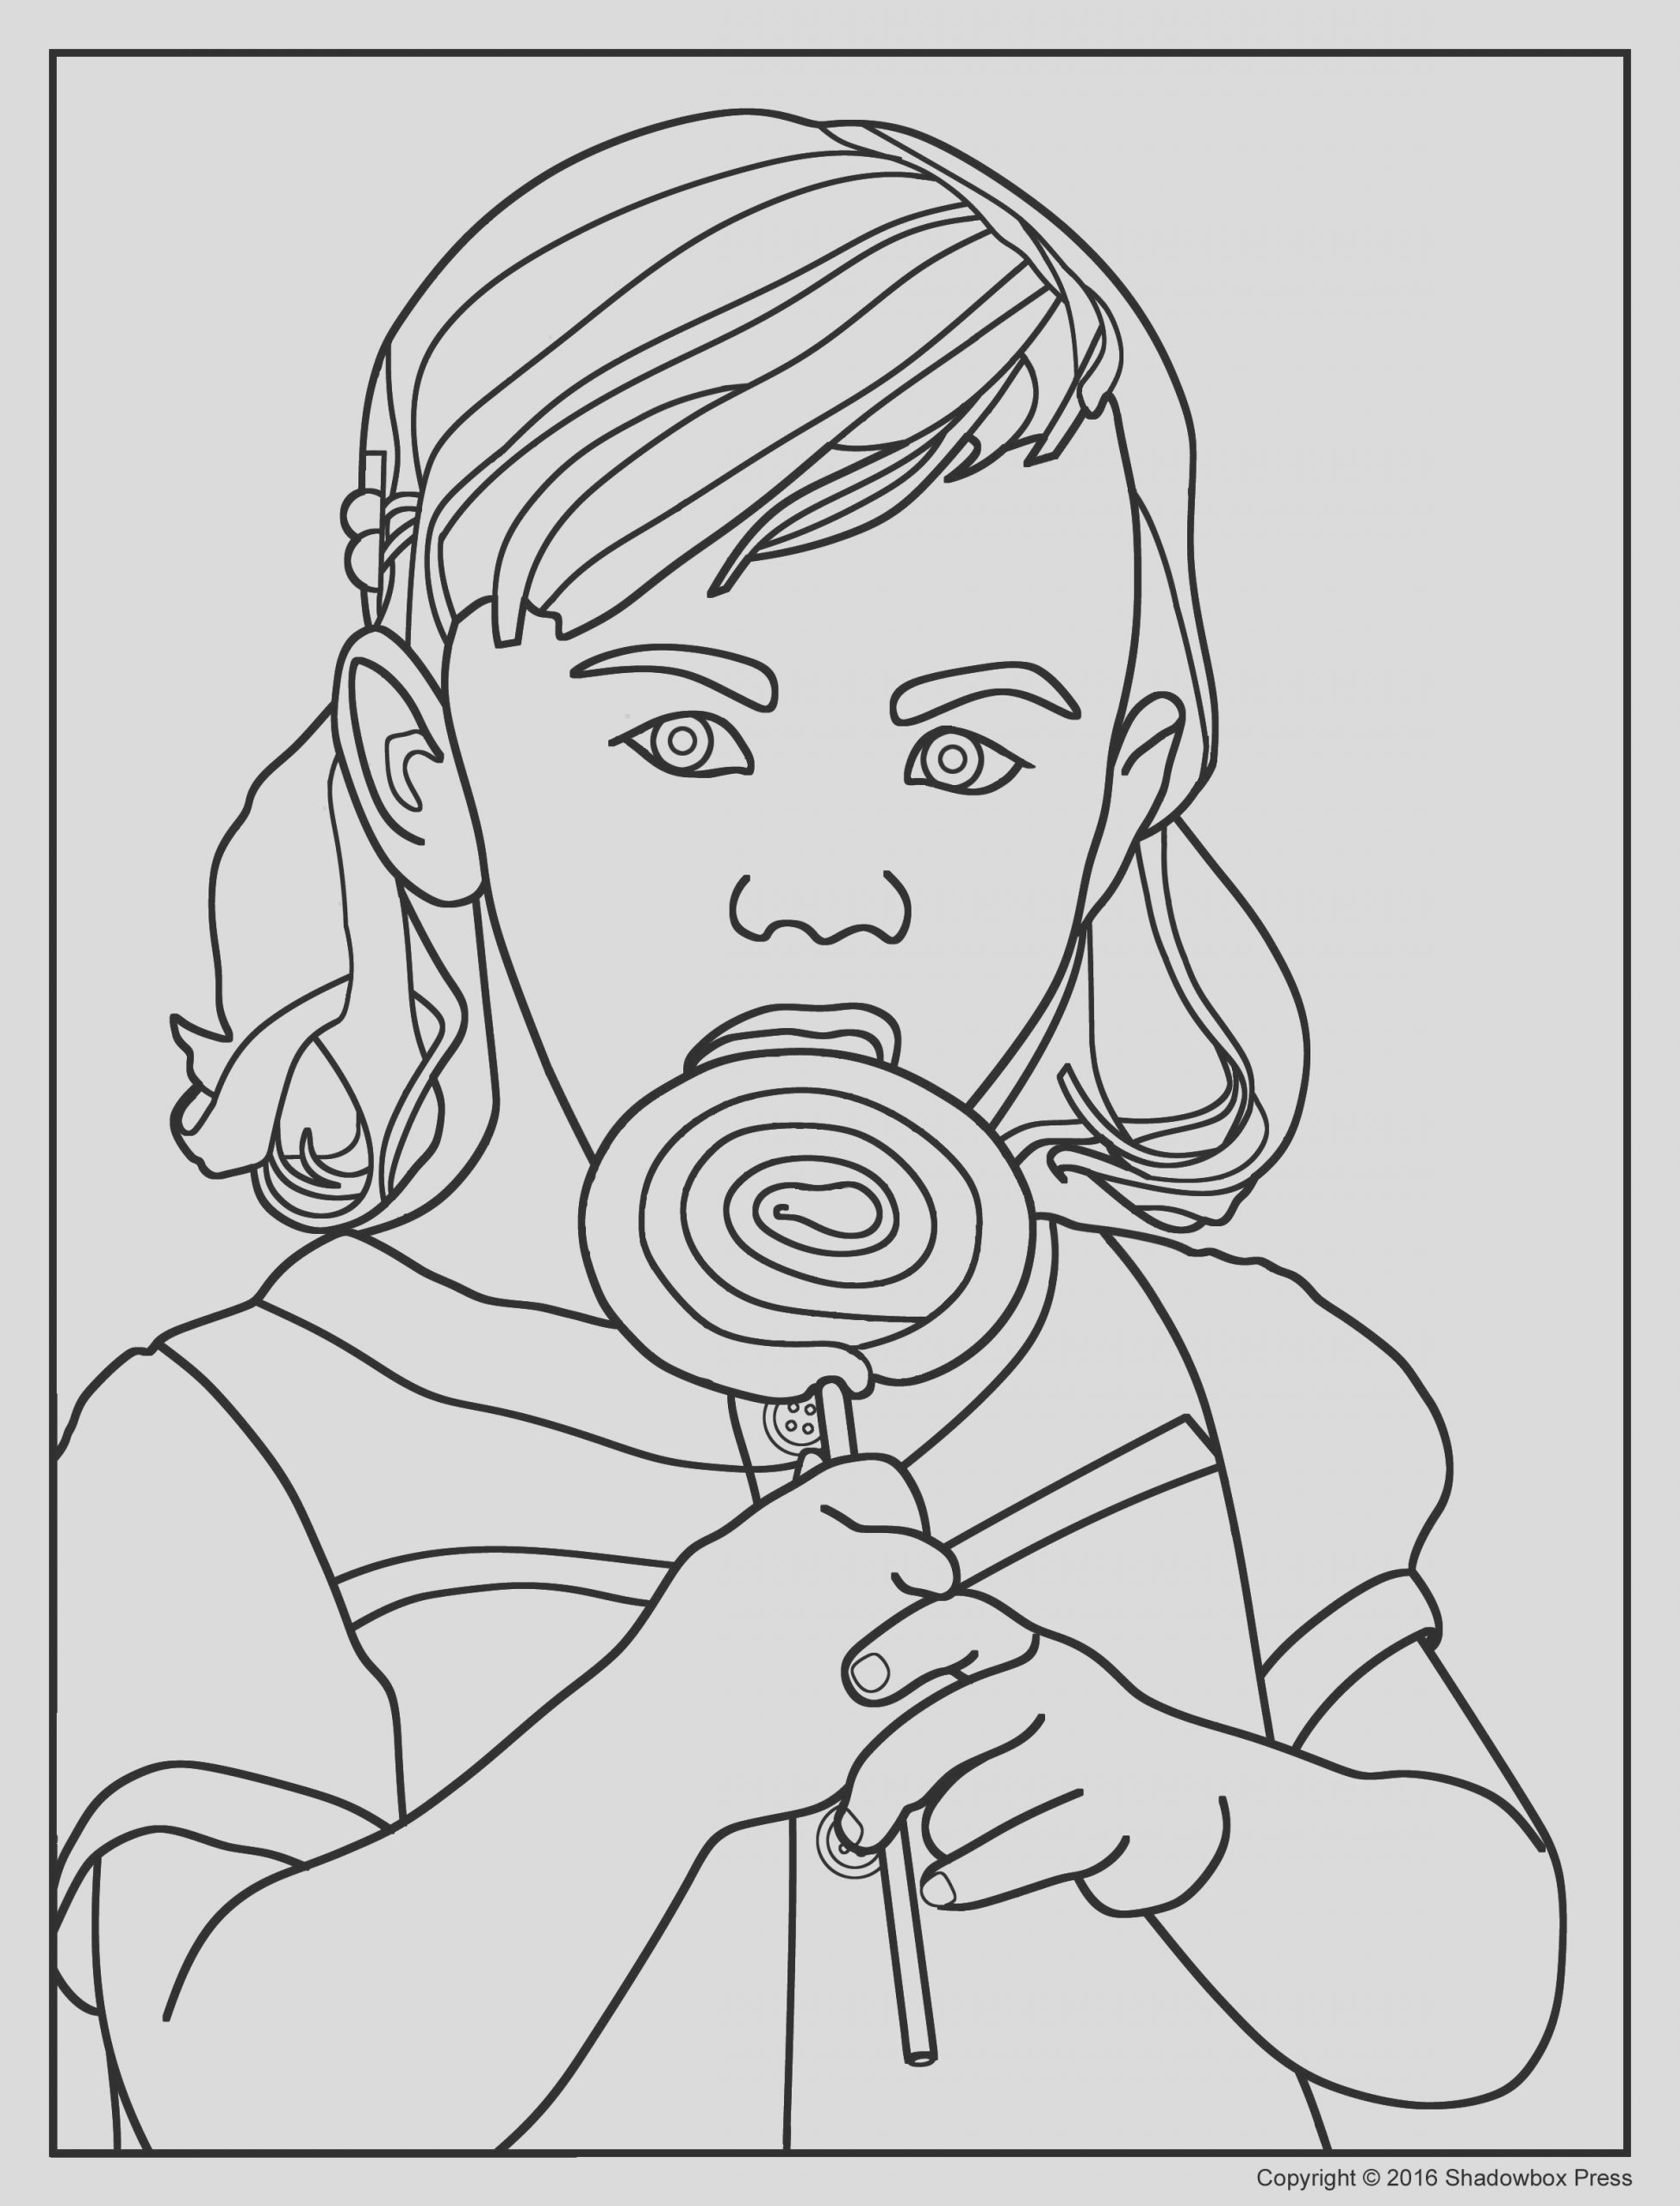 coloring can benefit adults living with memory loss plus four free able coloring pages